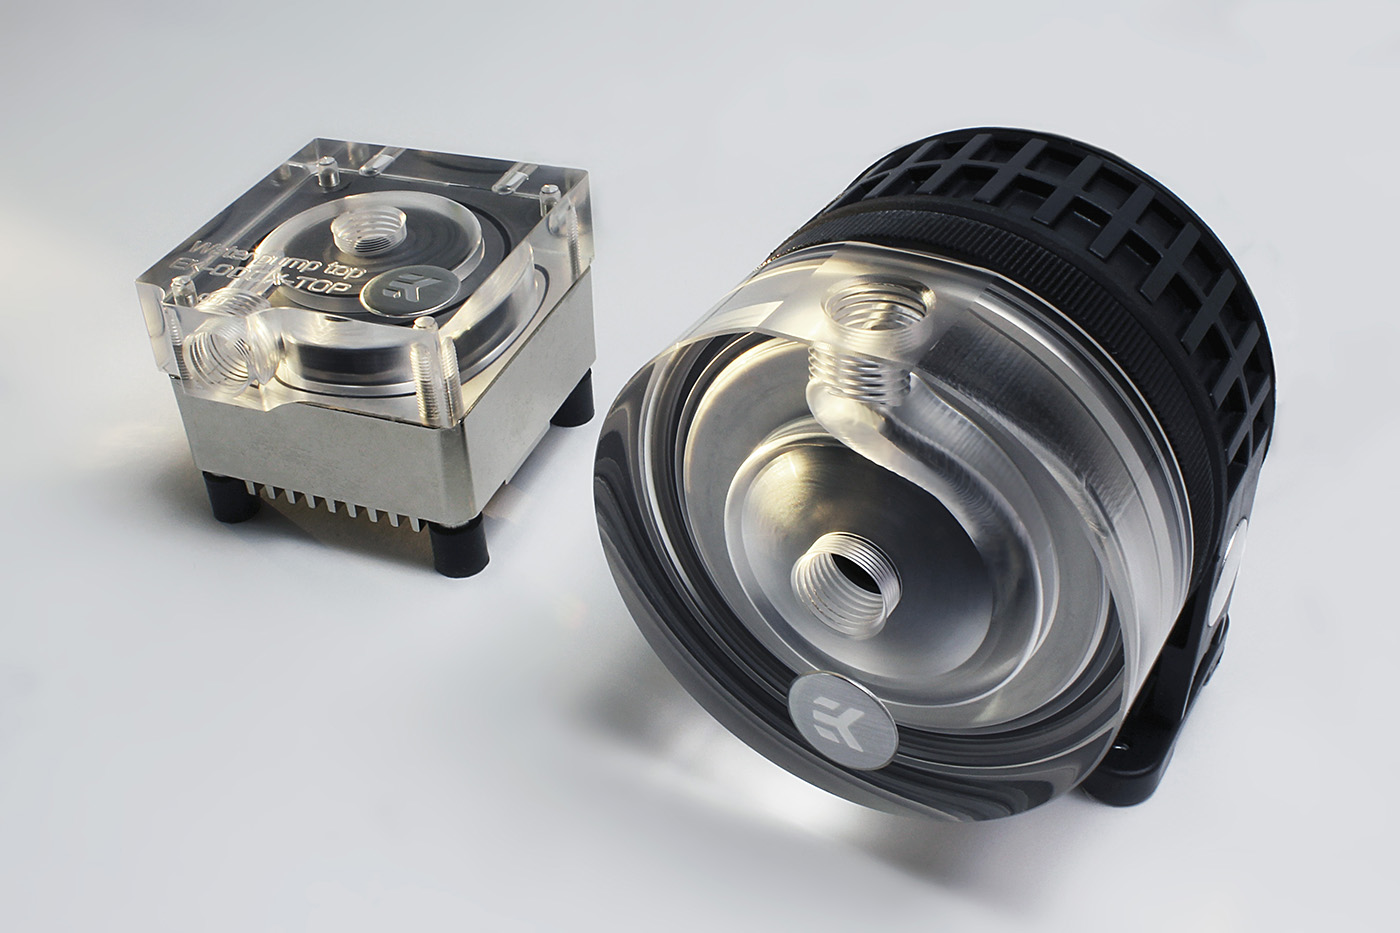 Which Pump Should You Use D5 Or Ddc To Adjust Water Pressure Switch Cuton And Of The Choice Vs 10